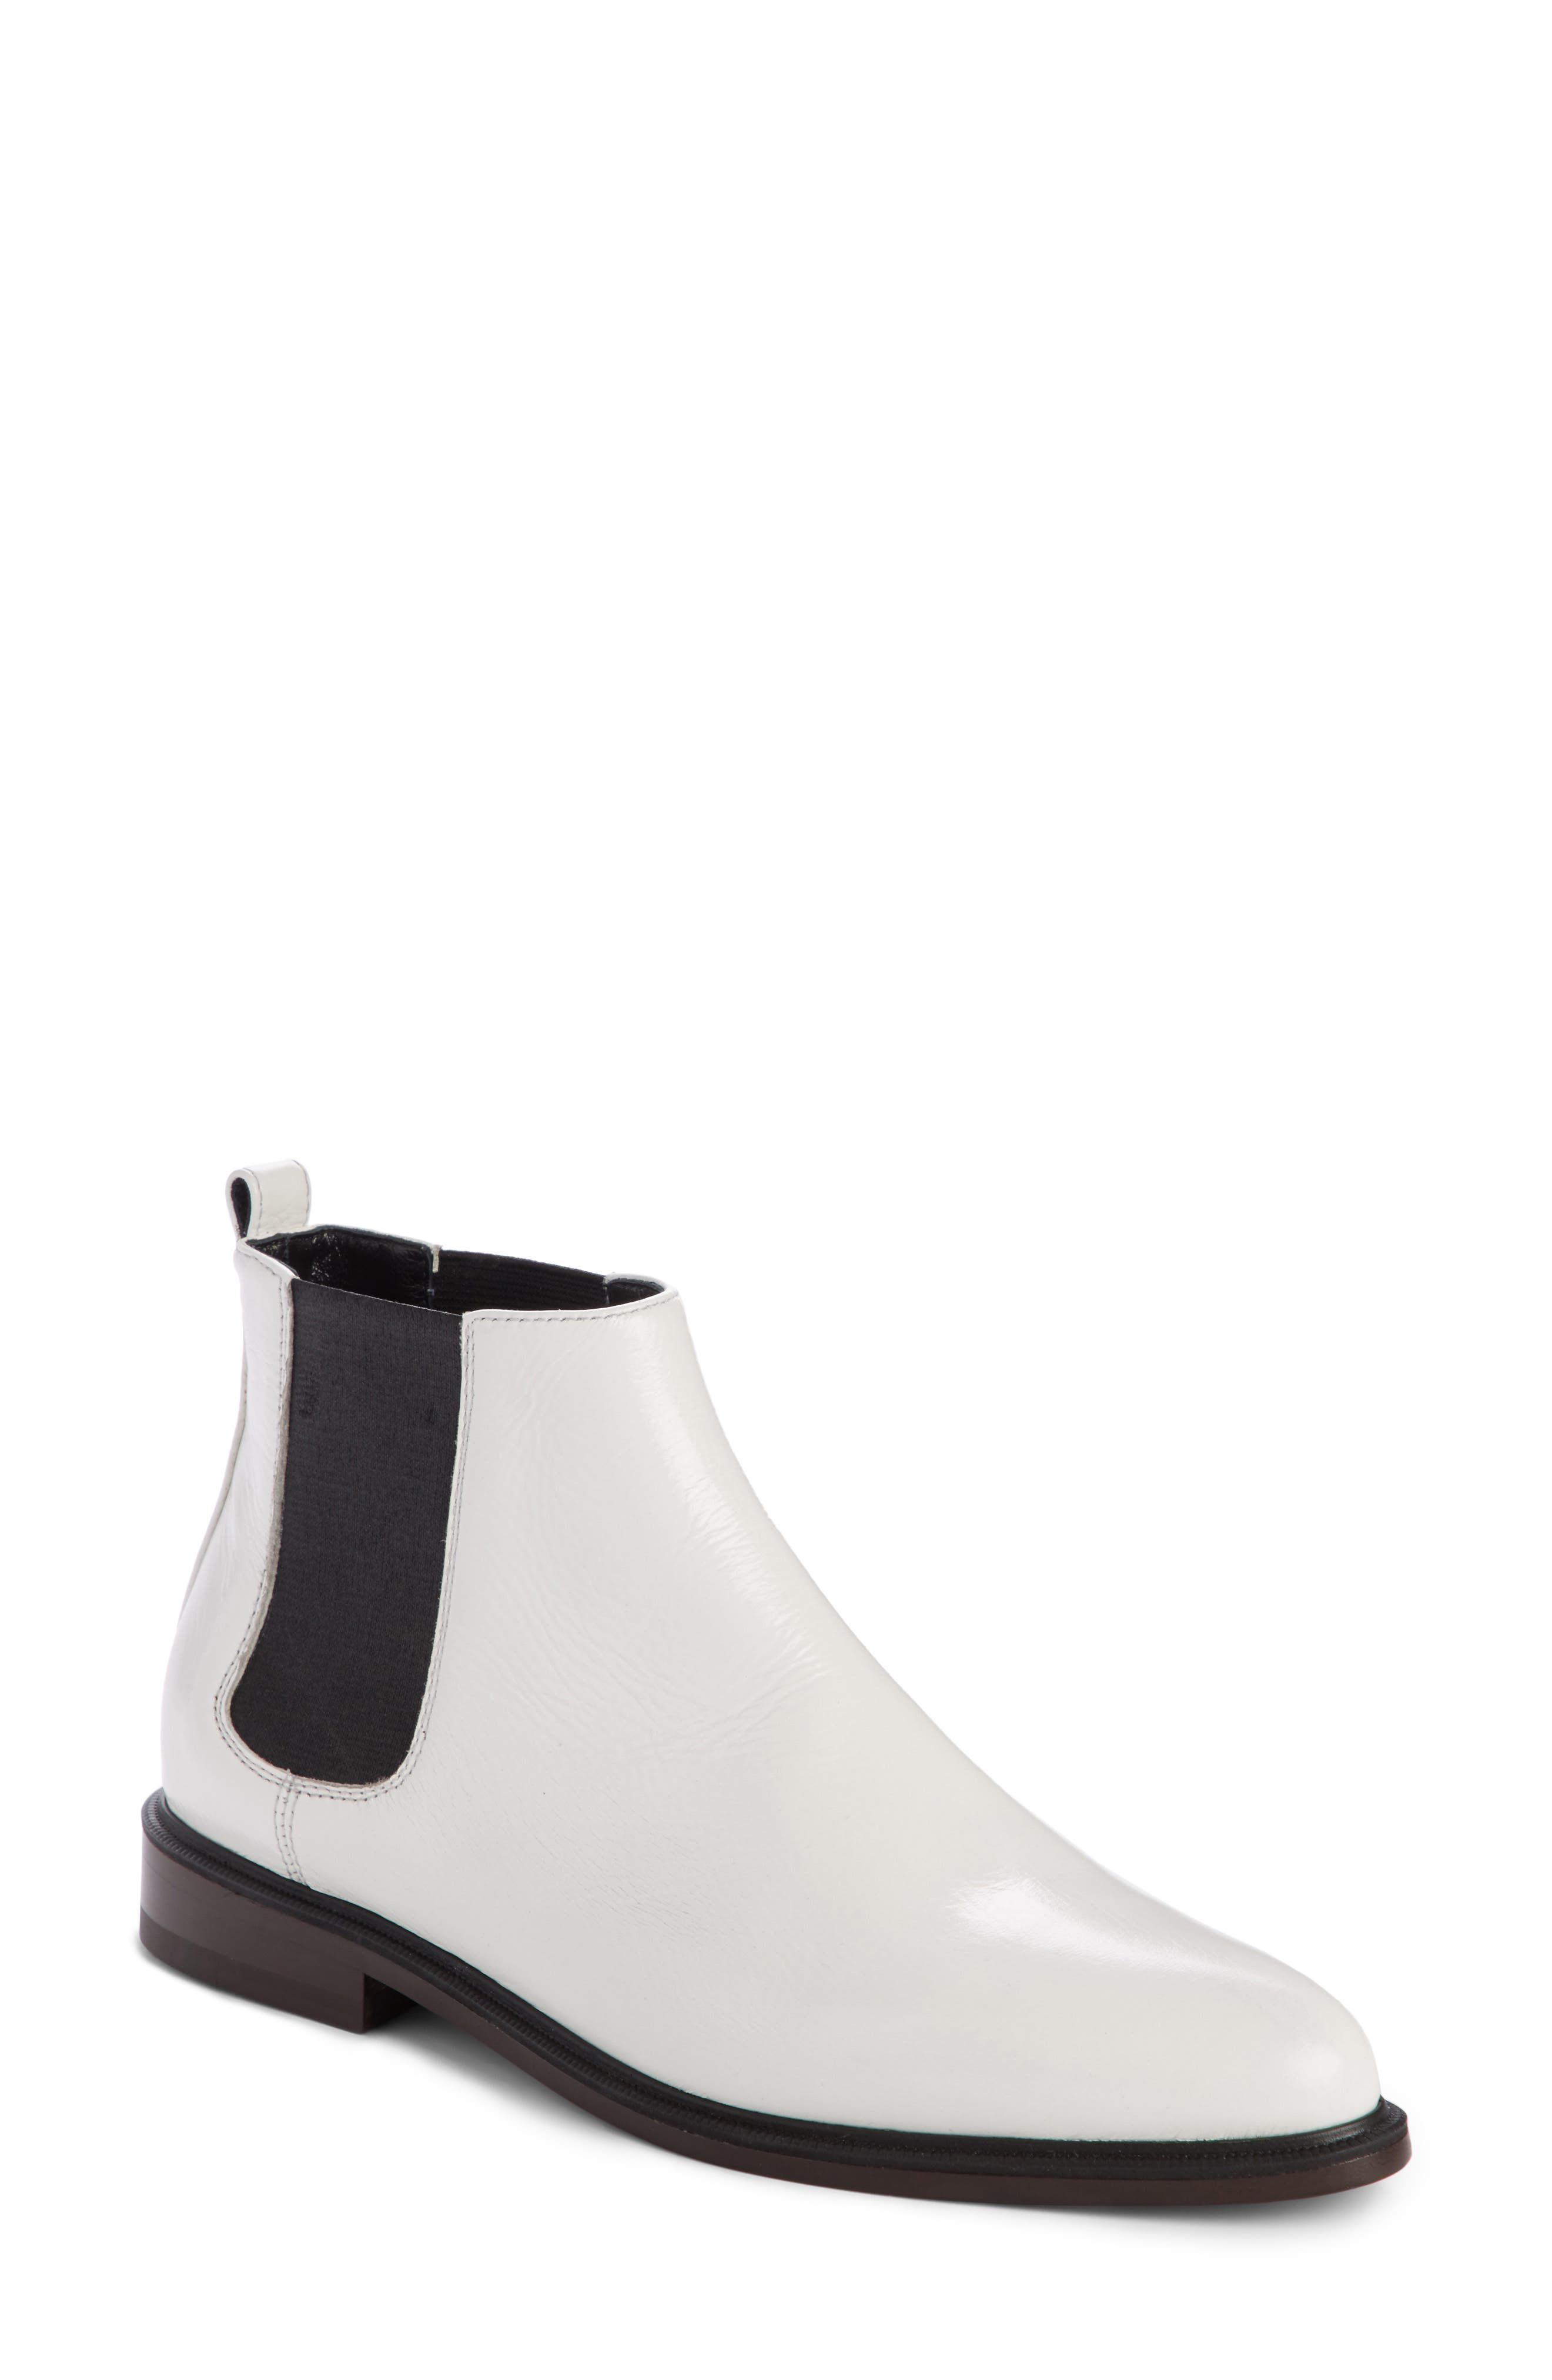 Chelsea Boot,                         Main,                         color, Optic White